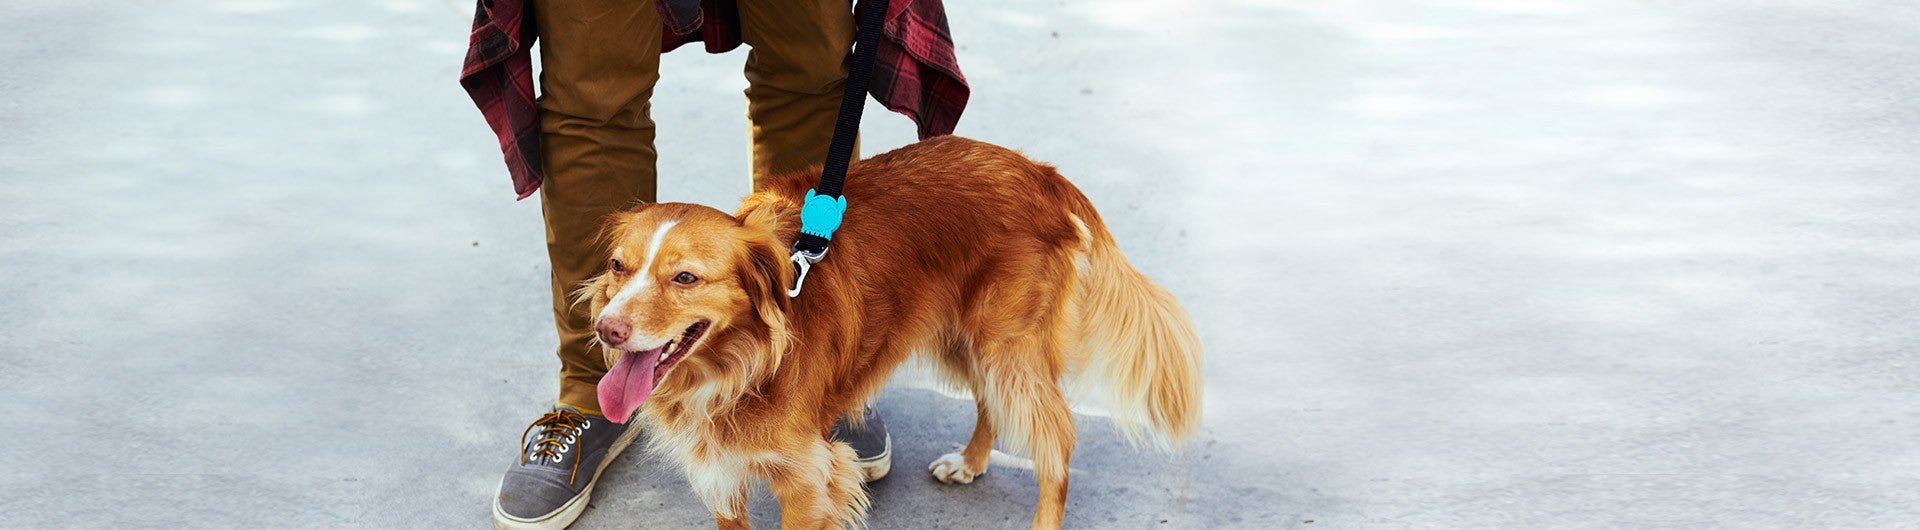 Monoby | Dog Leash